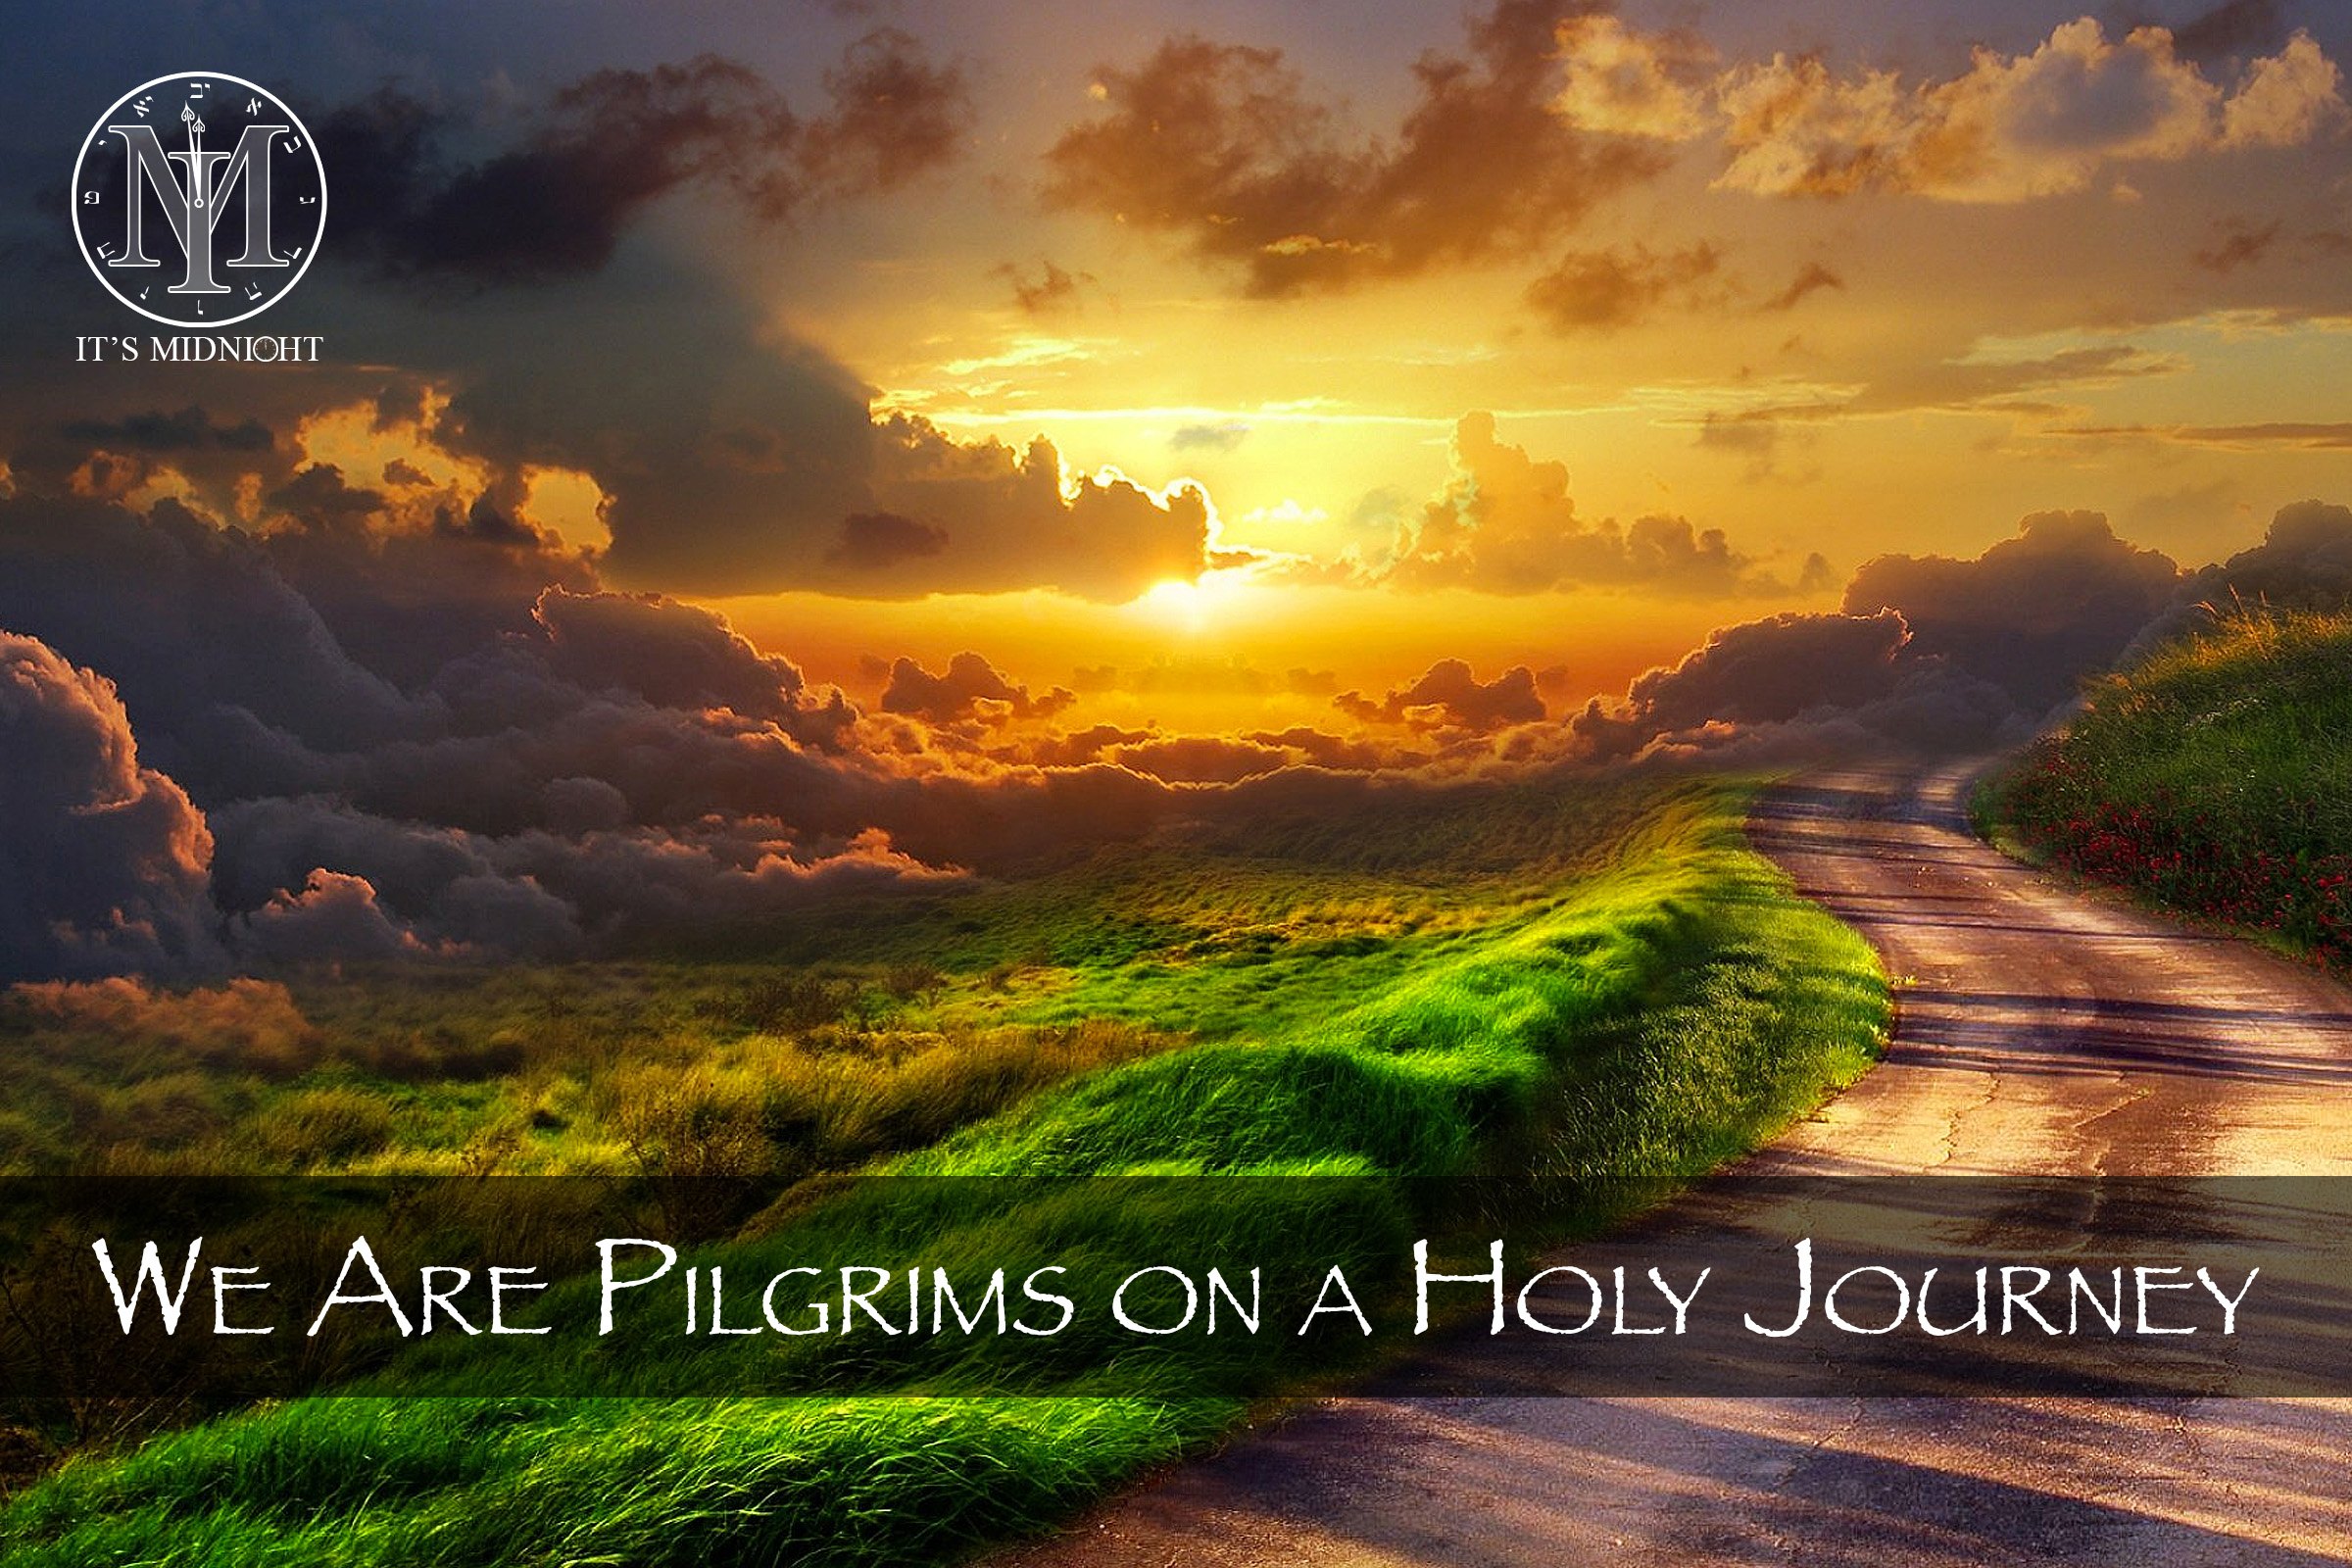 We Are Pilgrims on a Holy Journey.jpg